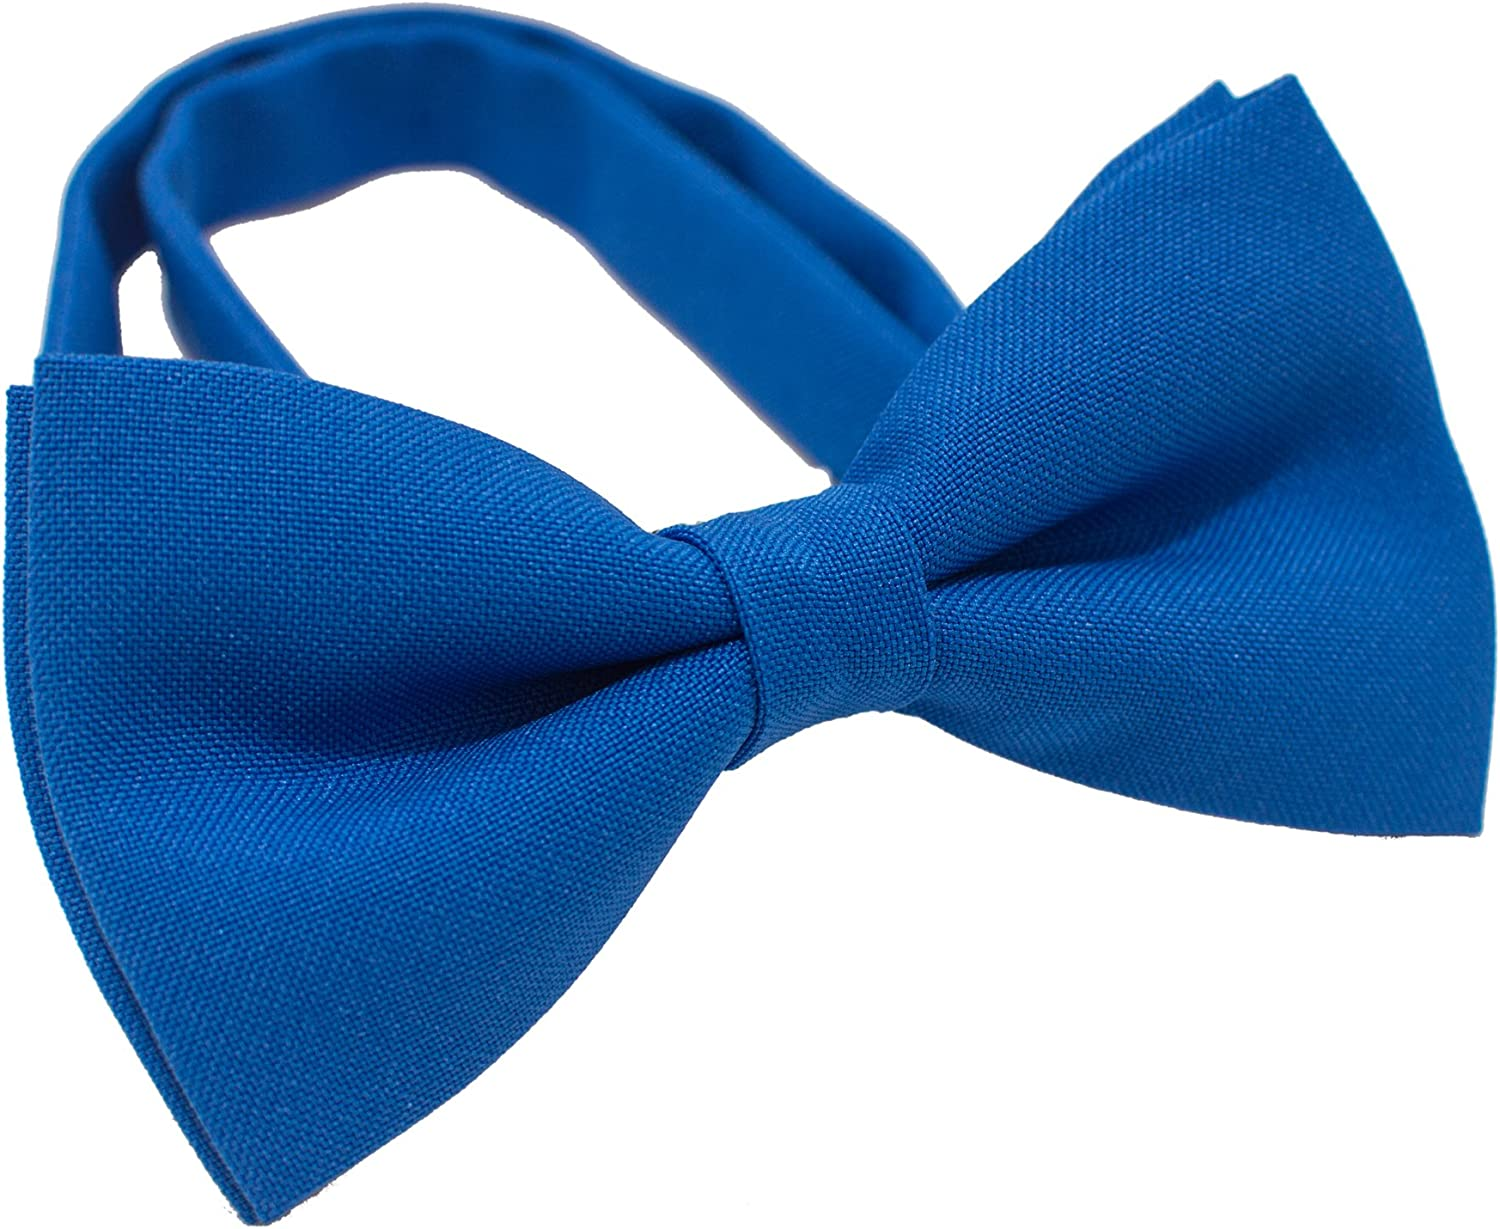 shop Bow Tie House Clip on Bow Tie for Boys Cute Natural Blue Bowtie Expands Our Color Line Light Sky Deep Navy Blue Bowties Mens and Electric Royal Blue Costume BowTies Medium, Natural Blue